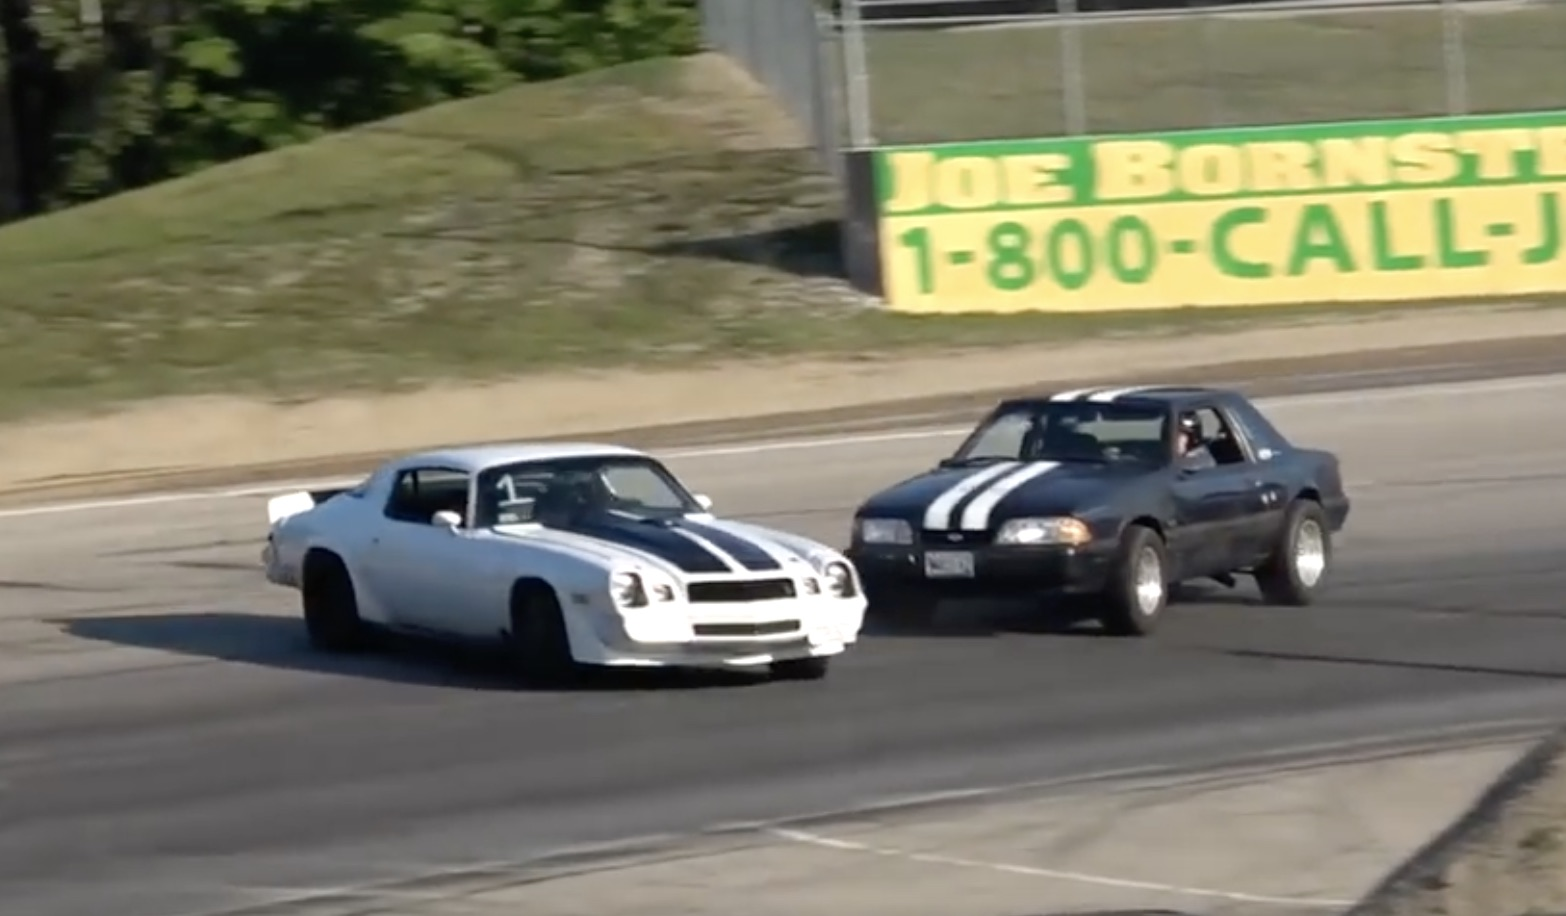 A Year In Review Of Spectator Drags: Close Races, Fender Rubbing And Wild Rides